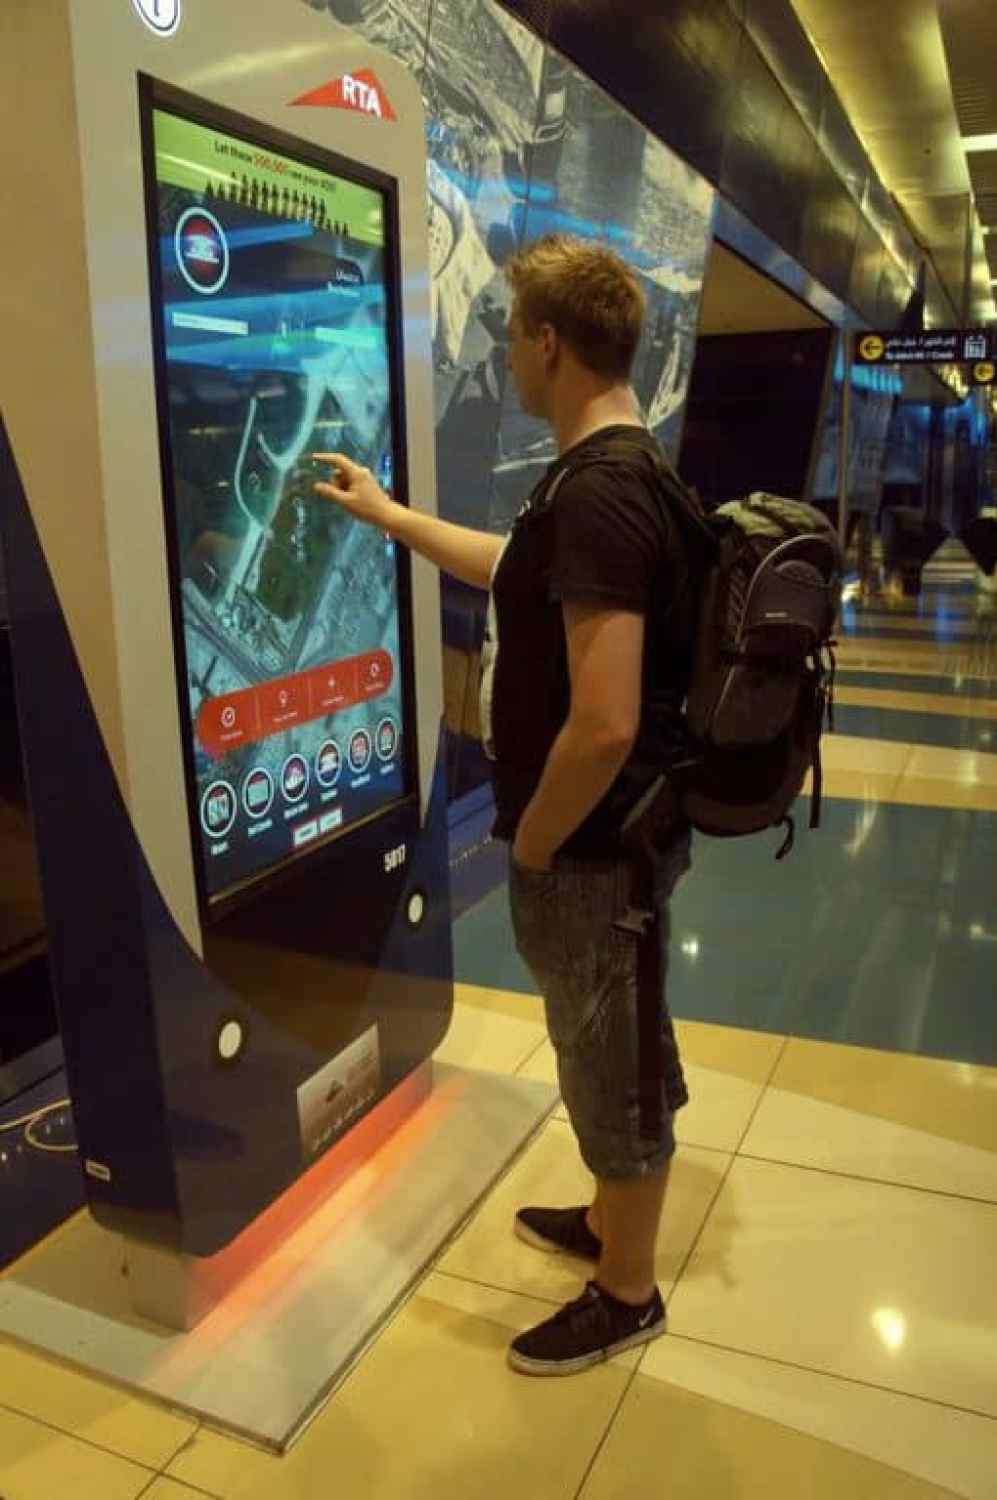 checking metro map in dubai